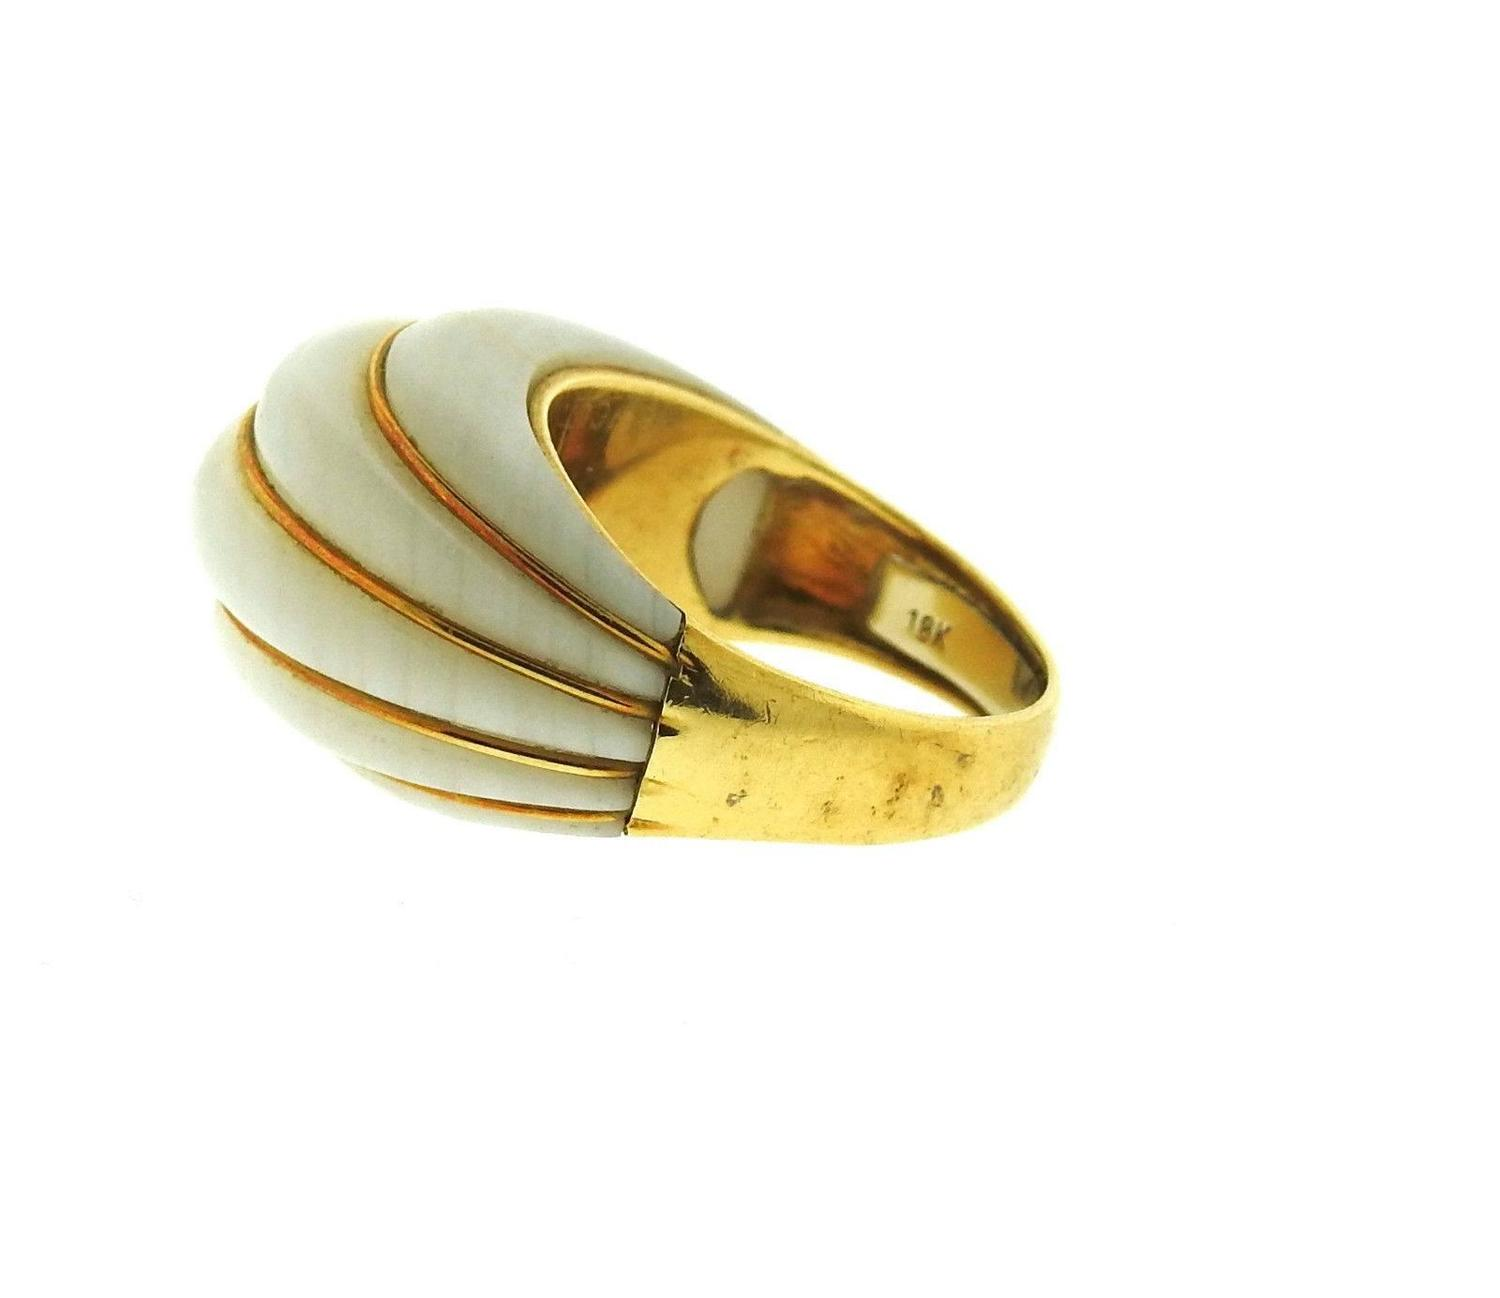 1970s white agate gold dome ring for sale at 1stdibs